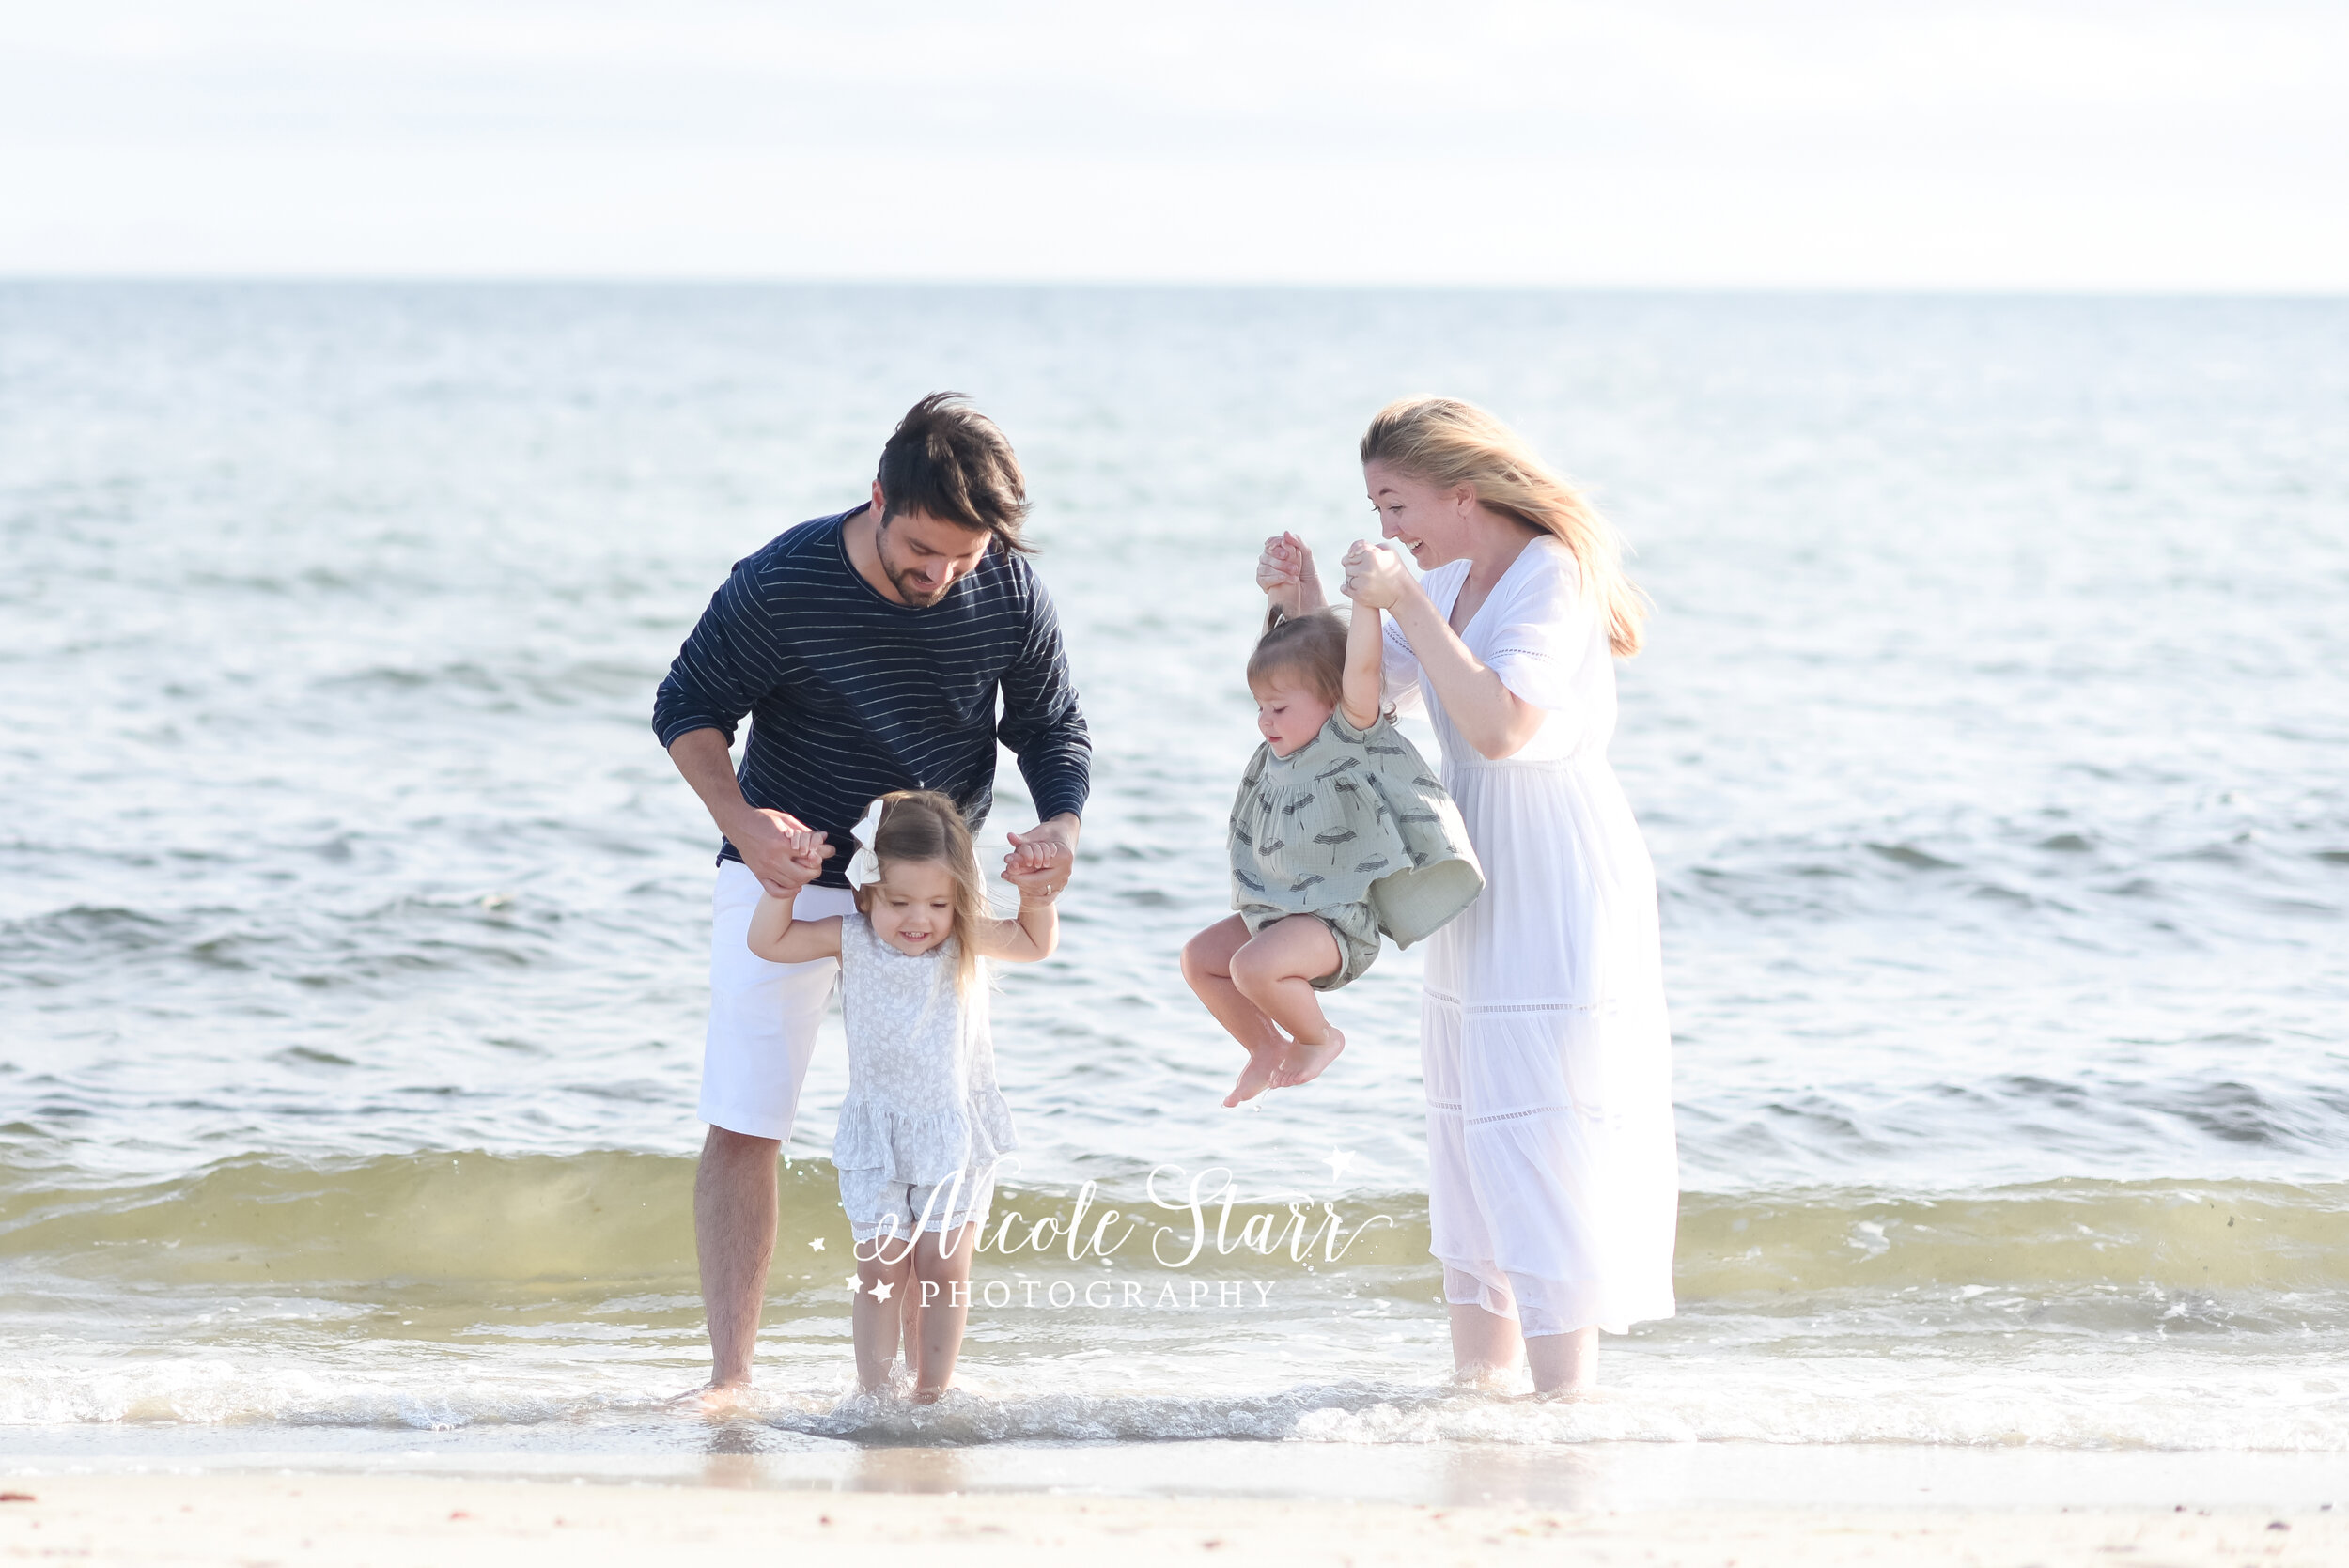 Nicole Starr Photography | Cape Cod Family Photographer | Boston Family Photographer | Family Photographer | Beach Family Photographer | Massachusetts Family Photographer | Cape Cod family portraits, family photos on the beach, beach family photos, beach family session, family session on the beach